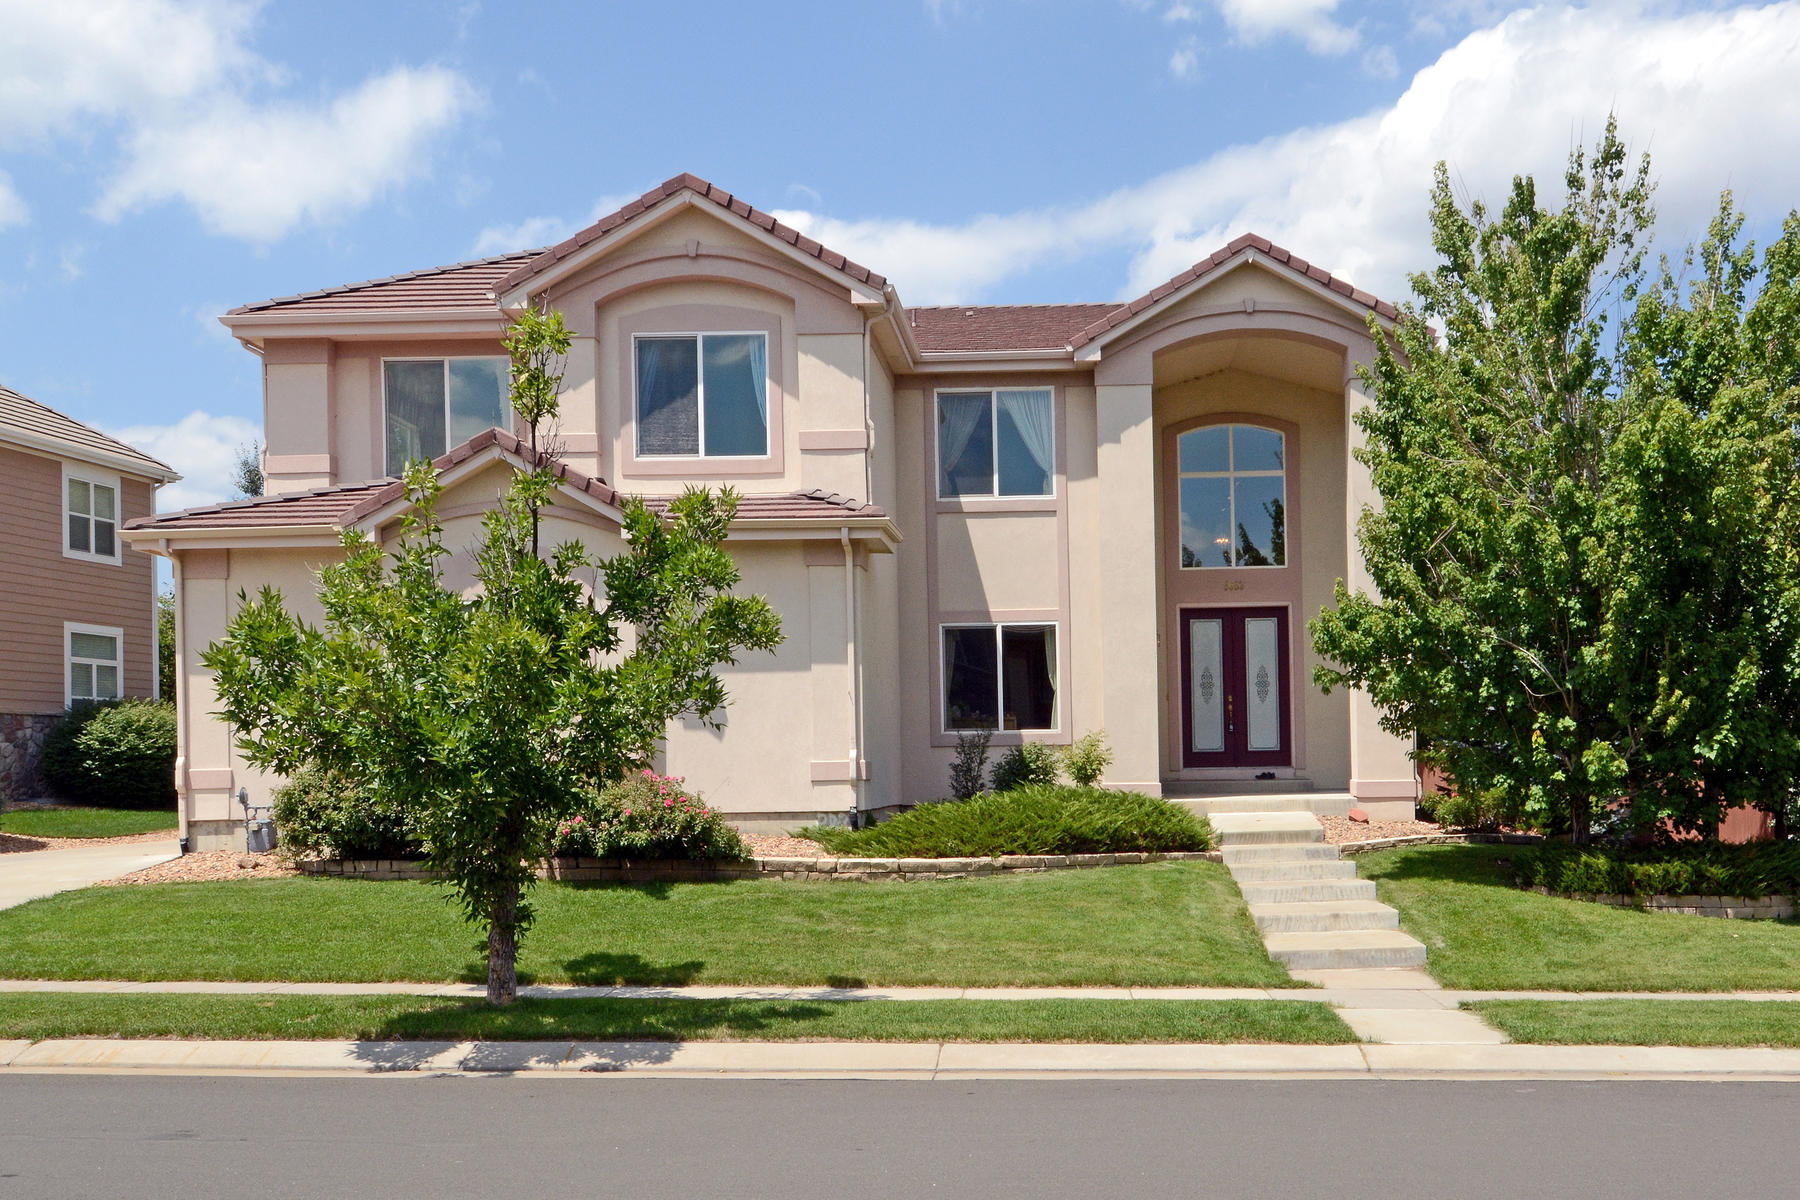 Property for Active at Classic Refined Quality Craftsmanship 5653 Stoneybrook Dr Broomfield, Colorado 80020 United States